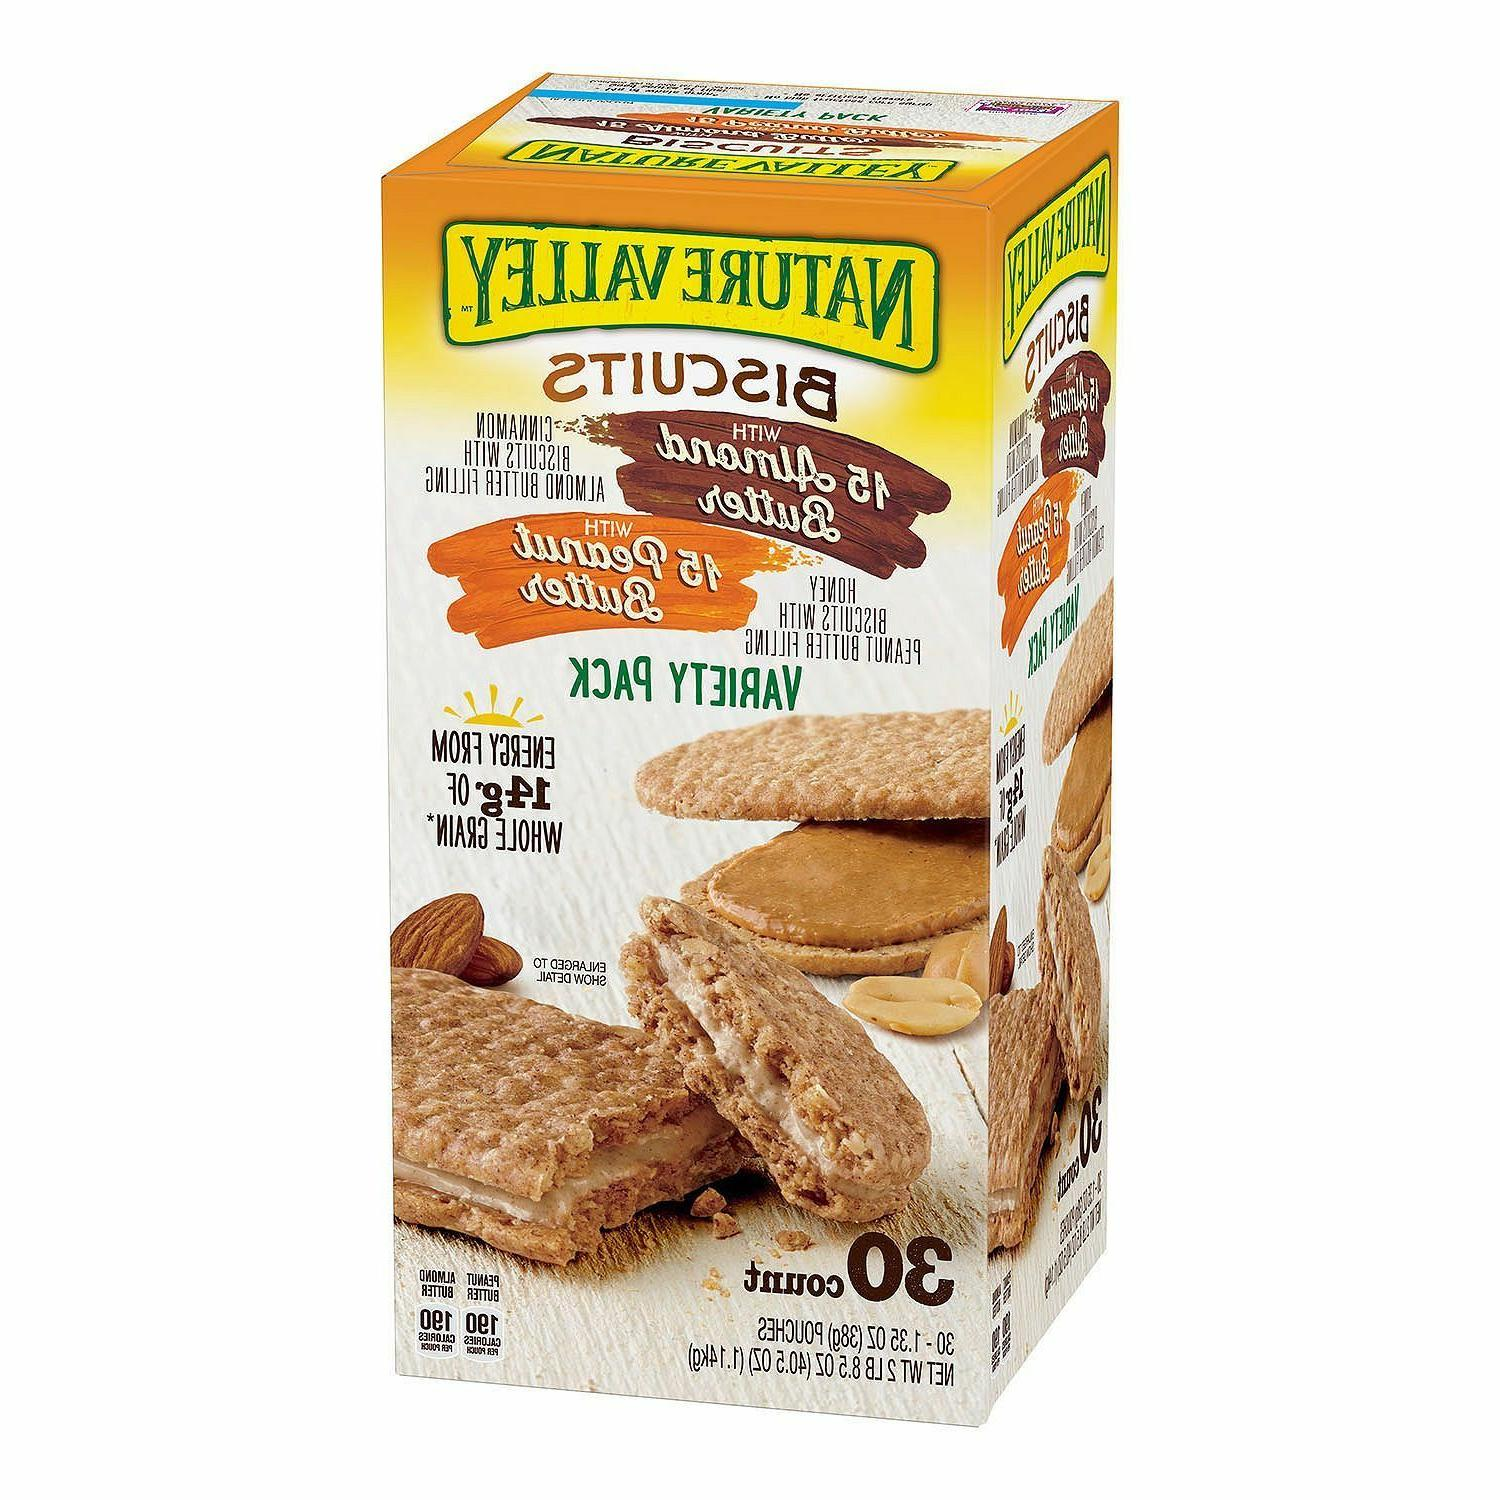 Nature Valley Biscuit Sandwich Variety Pack *THE BEST PRICE*